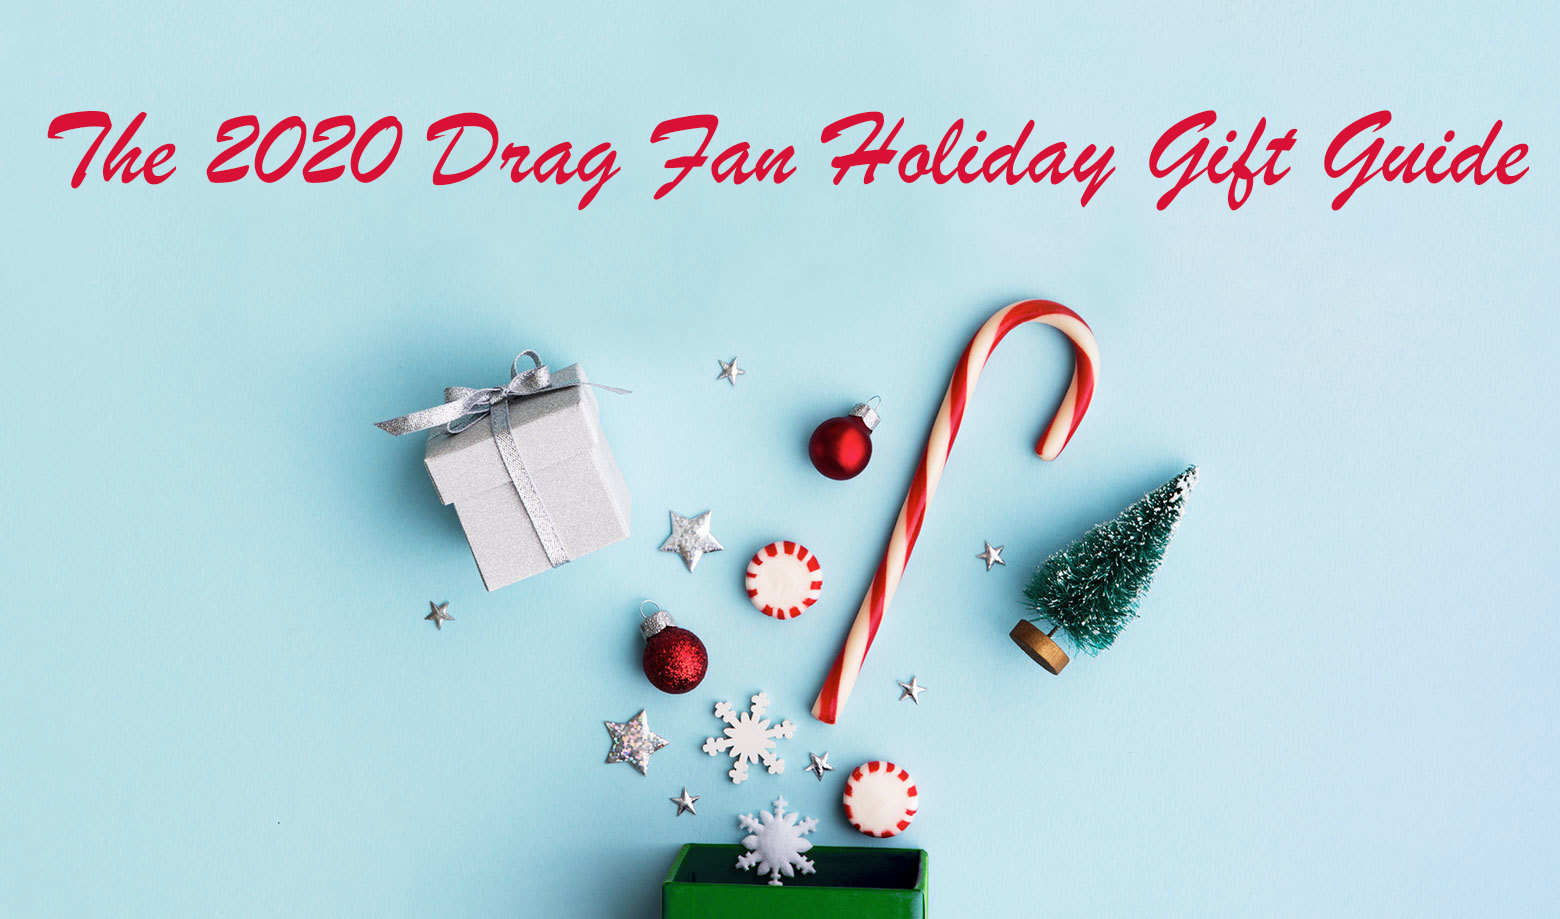 The 2020 Drag Fan Holiday Gift Guide